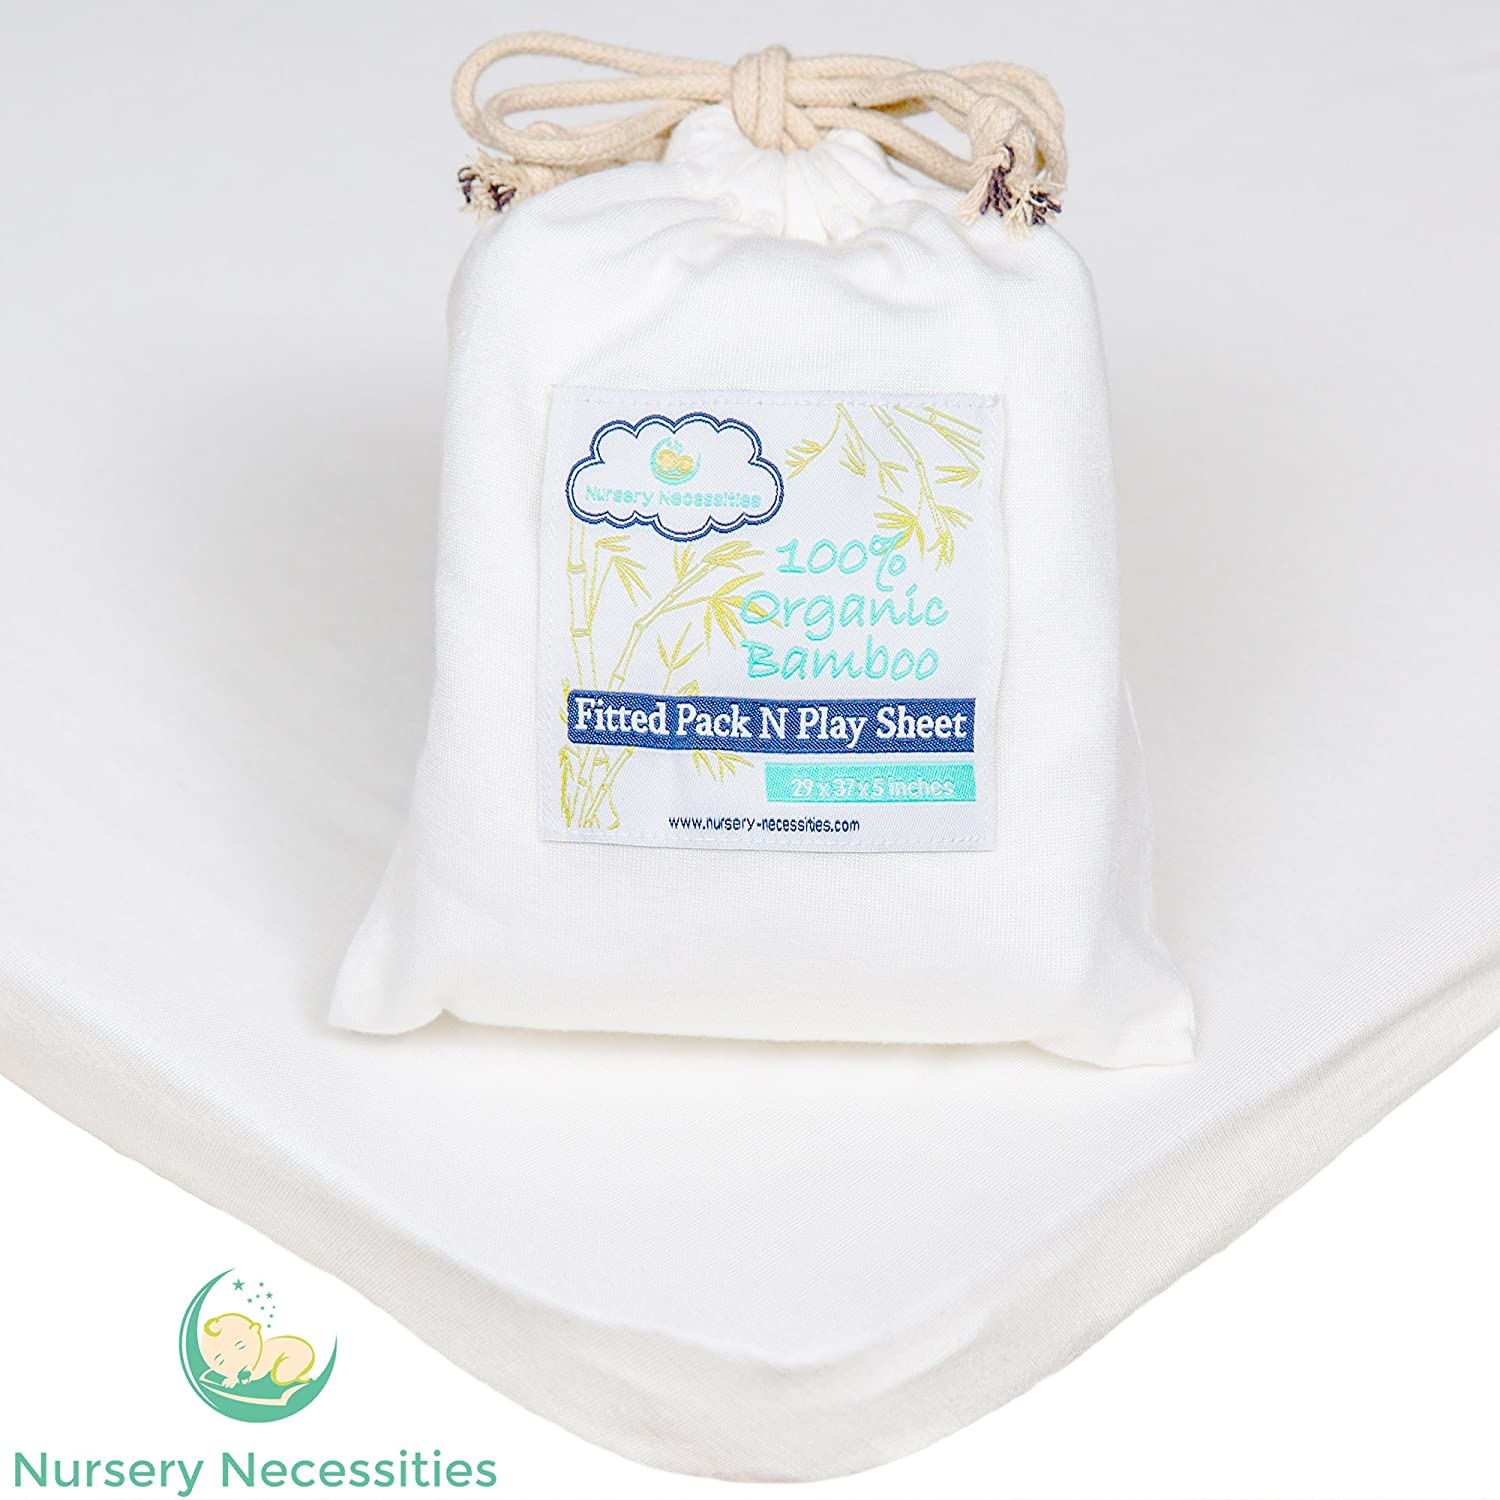 100% Organic Bamboo Pack N spielen Sheet - Silky Soft, Antibacterial, Hypoallergenic - Superior zu Cotton - durch Nursery Necessities